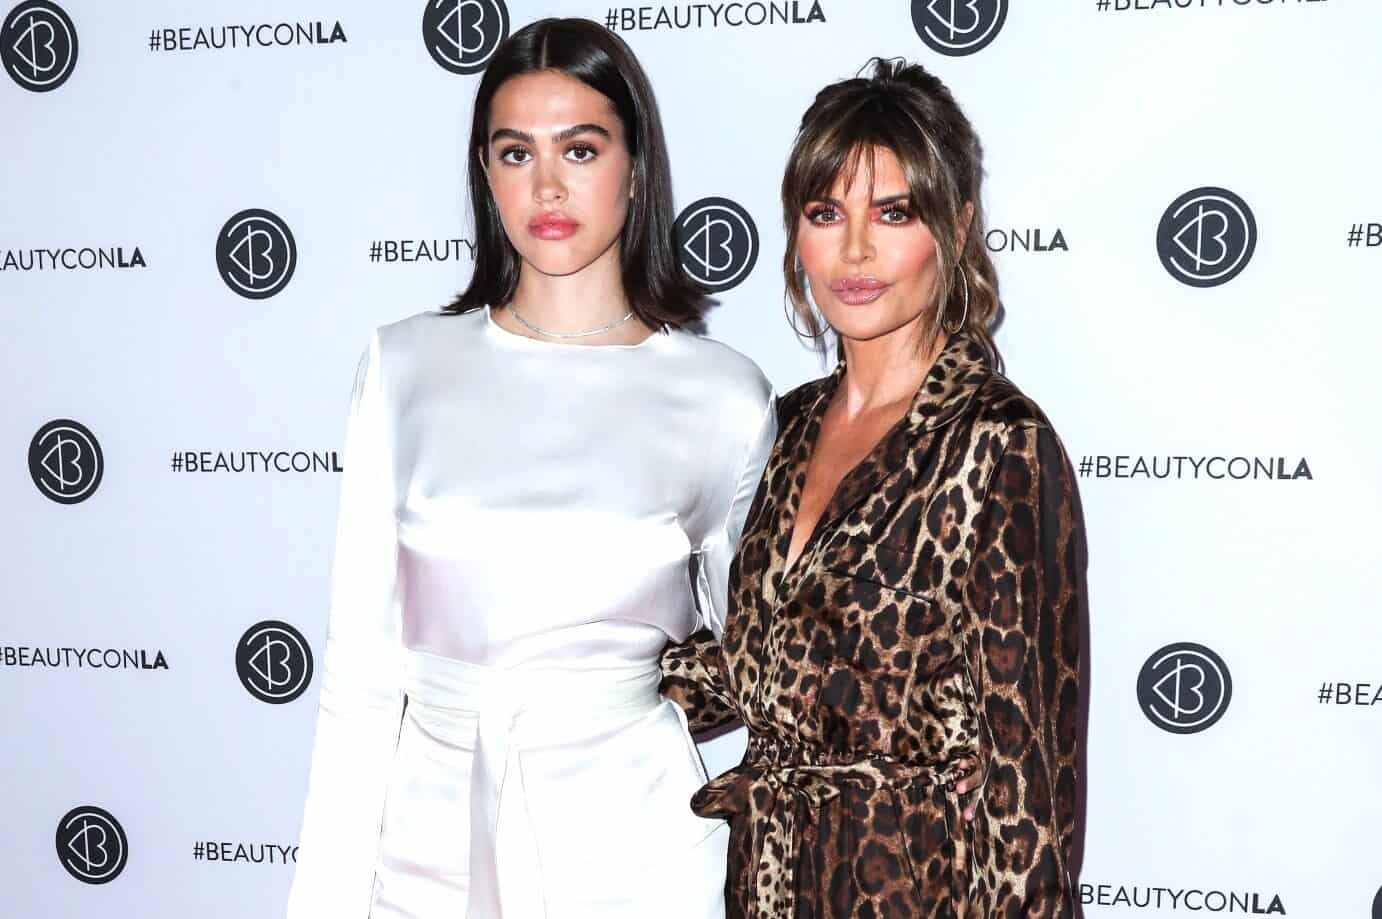 Lisa Rinna Blasted By Troll For Complimenting Daughter Amelia's Lingerie Photos as RHOBH Star Fires Back and Defends Her